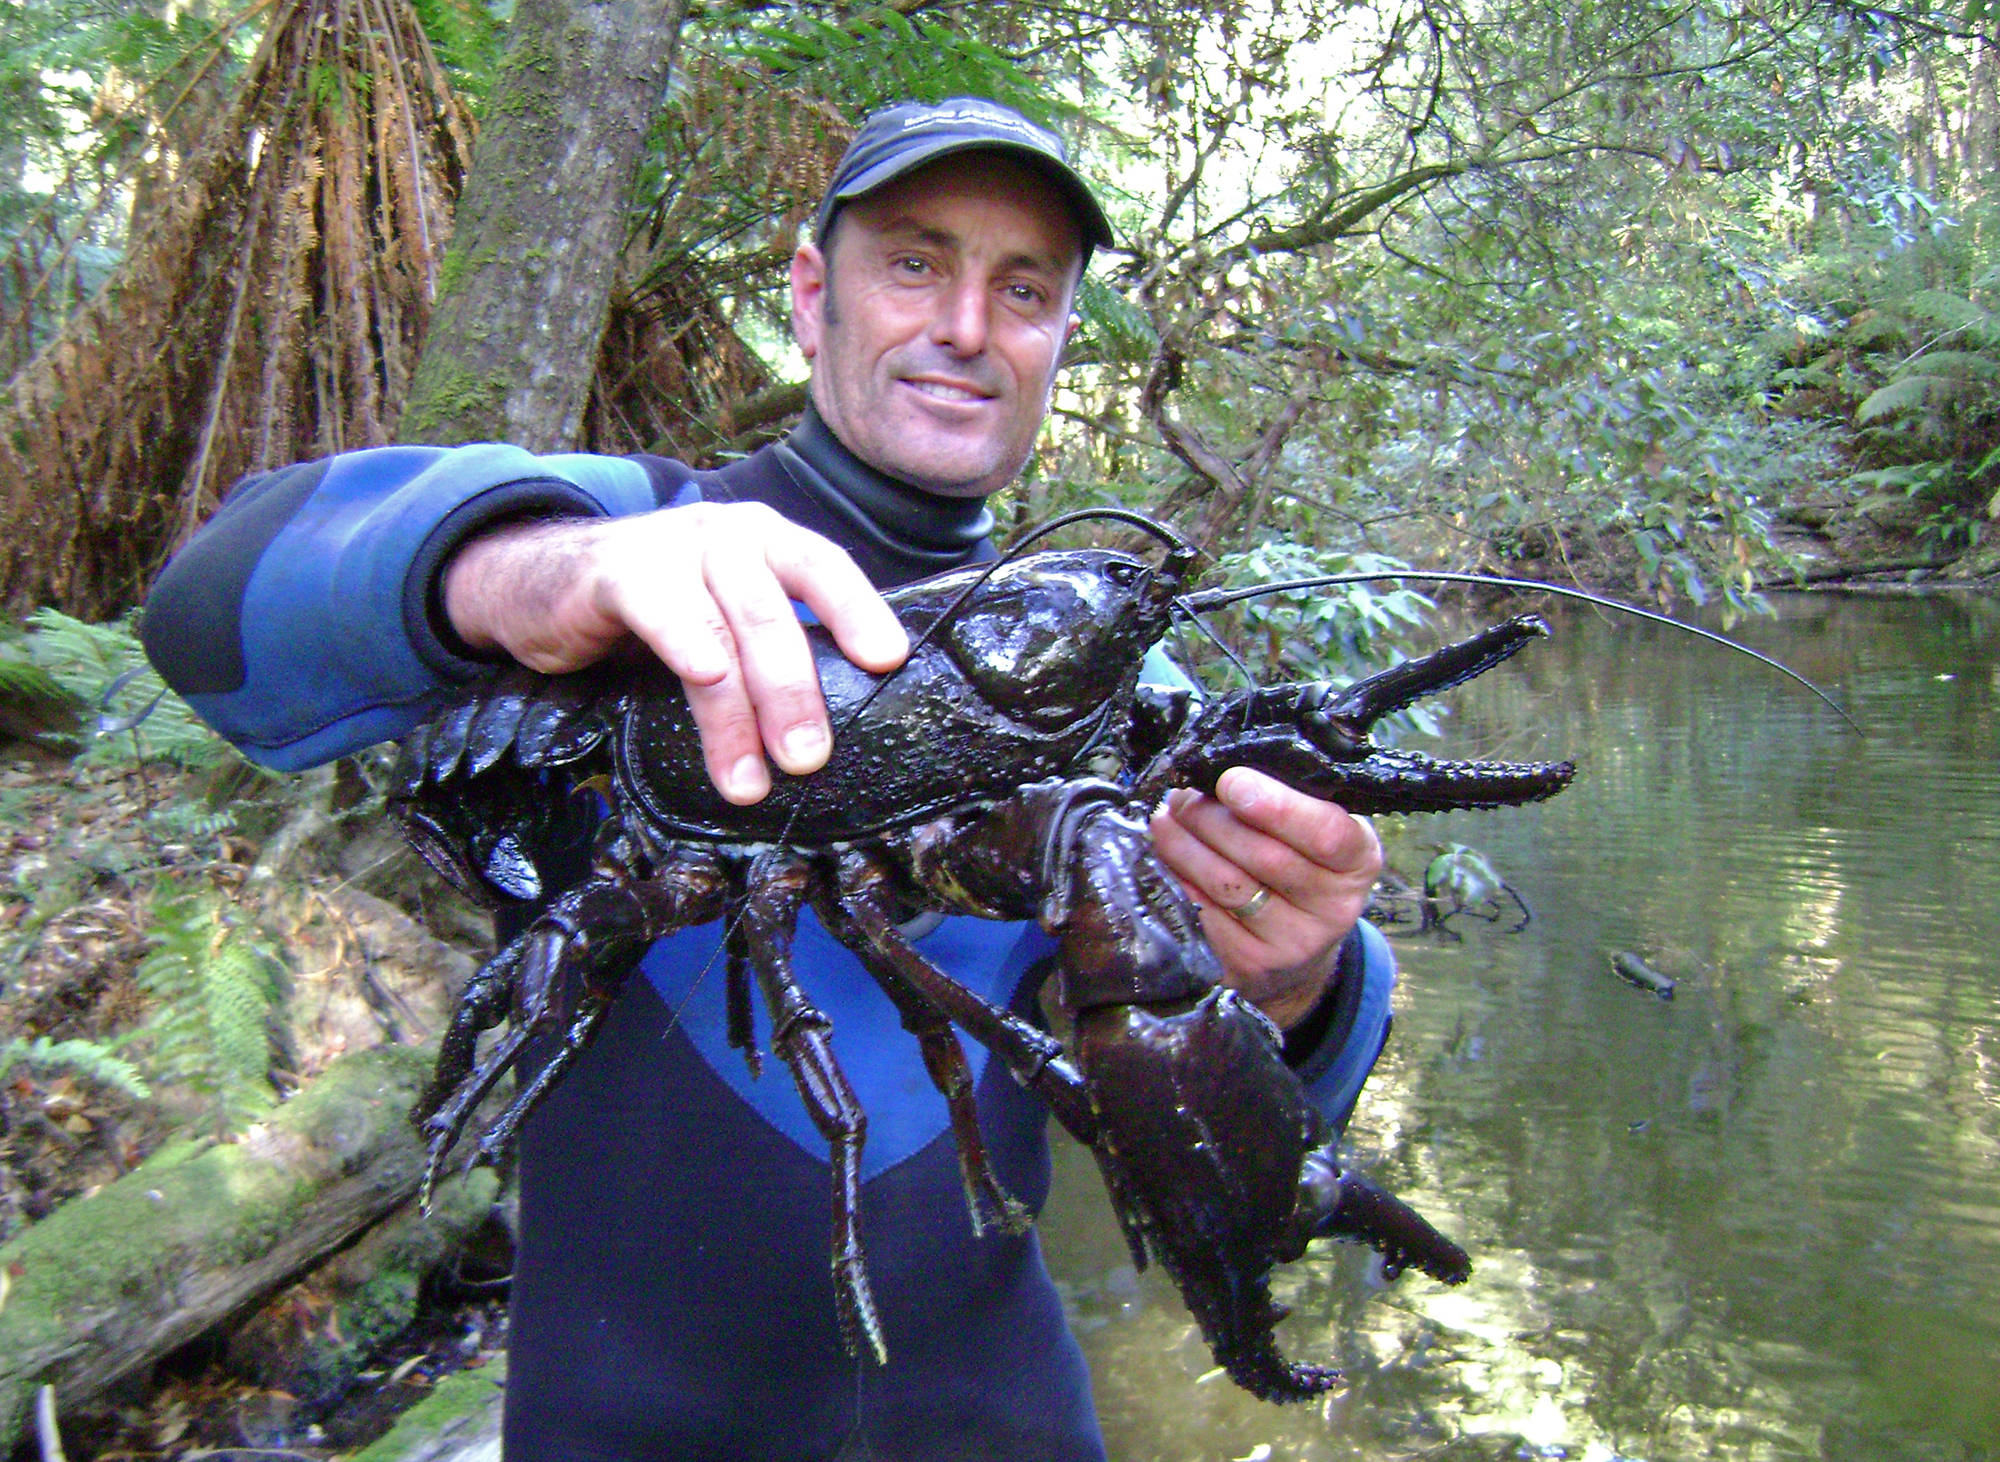 Underwater cameraman Dave Abbott holds up a Giant freshwater lobster while on a filming assignment